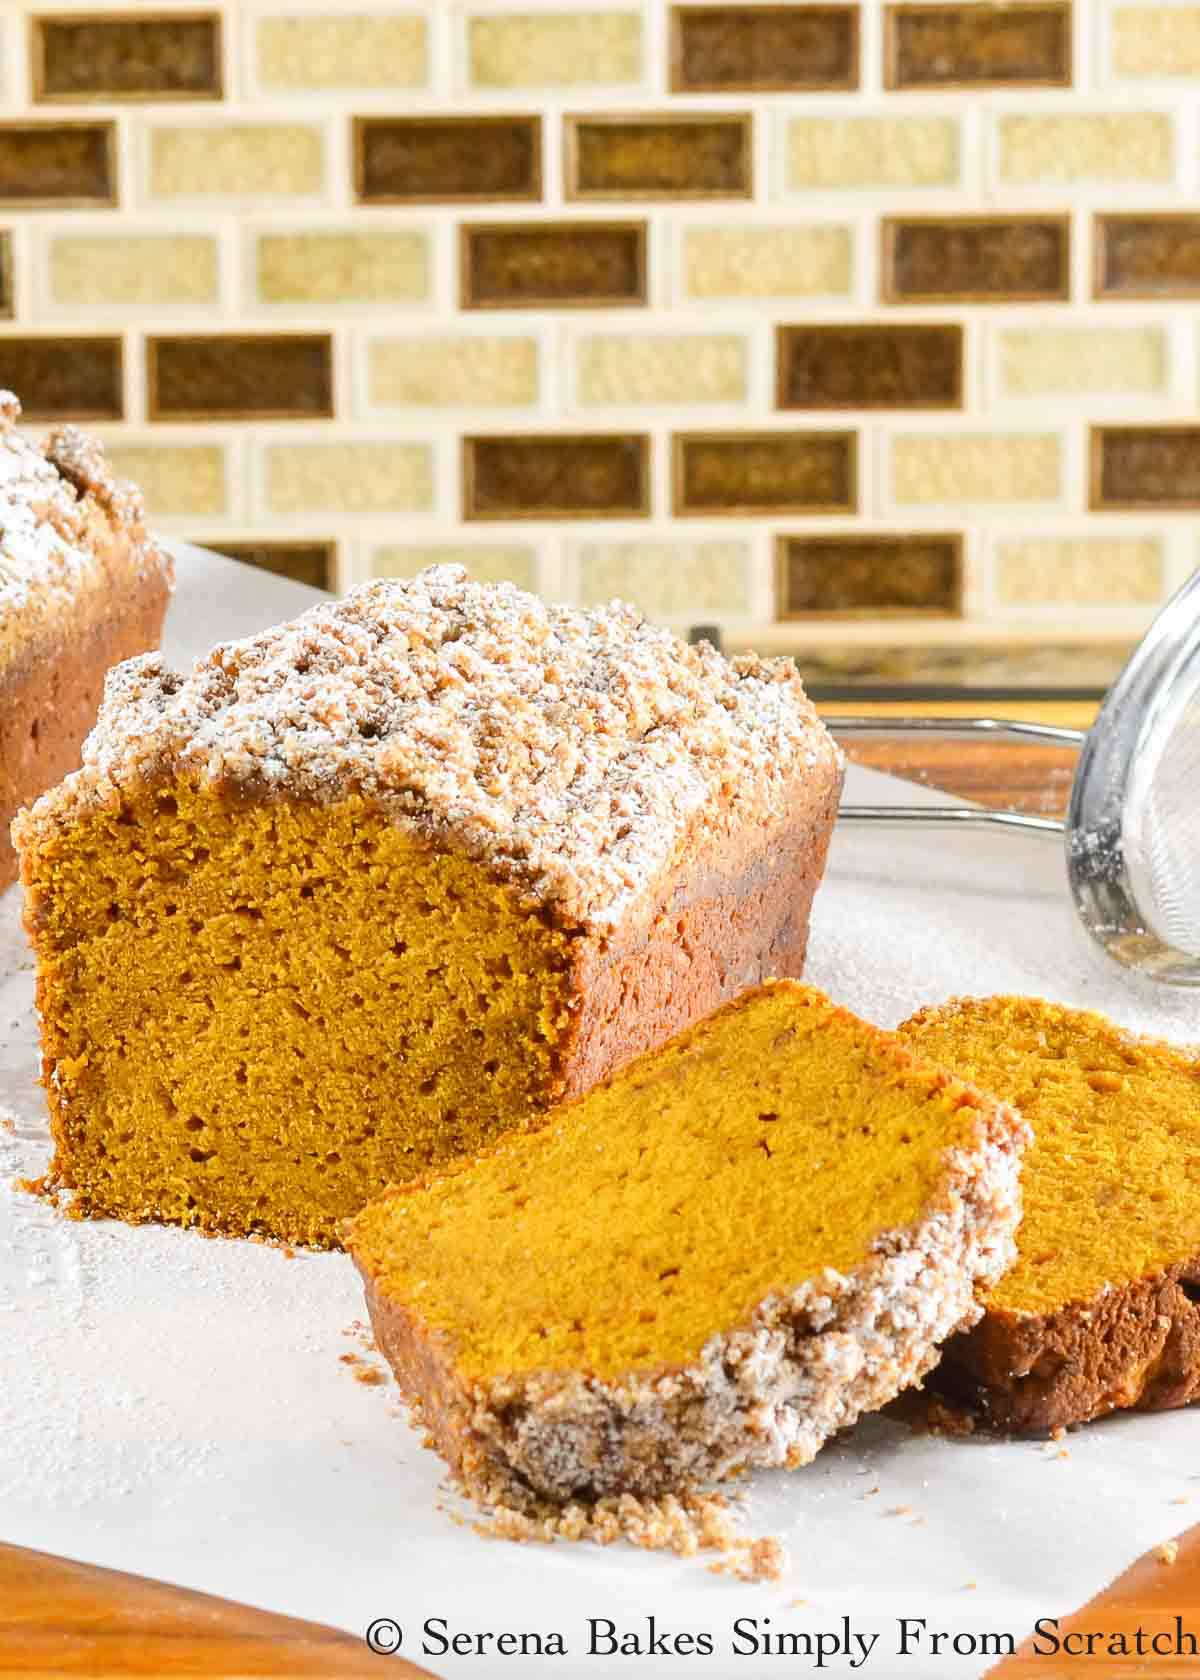 Sliced Pumpkin Bread with Streusel Topping lightly dusted with powdered sugar.